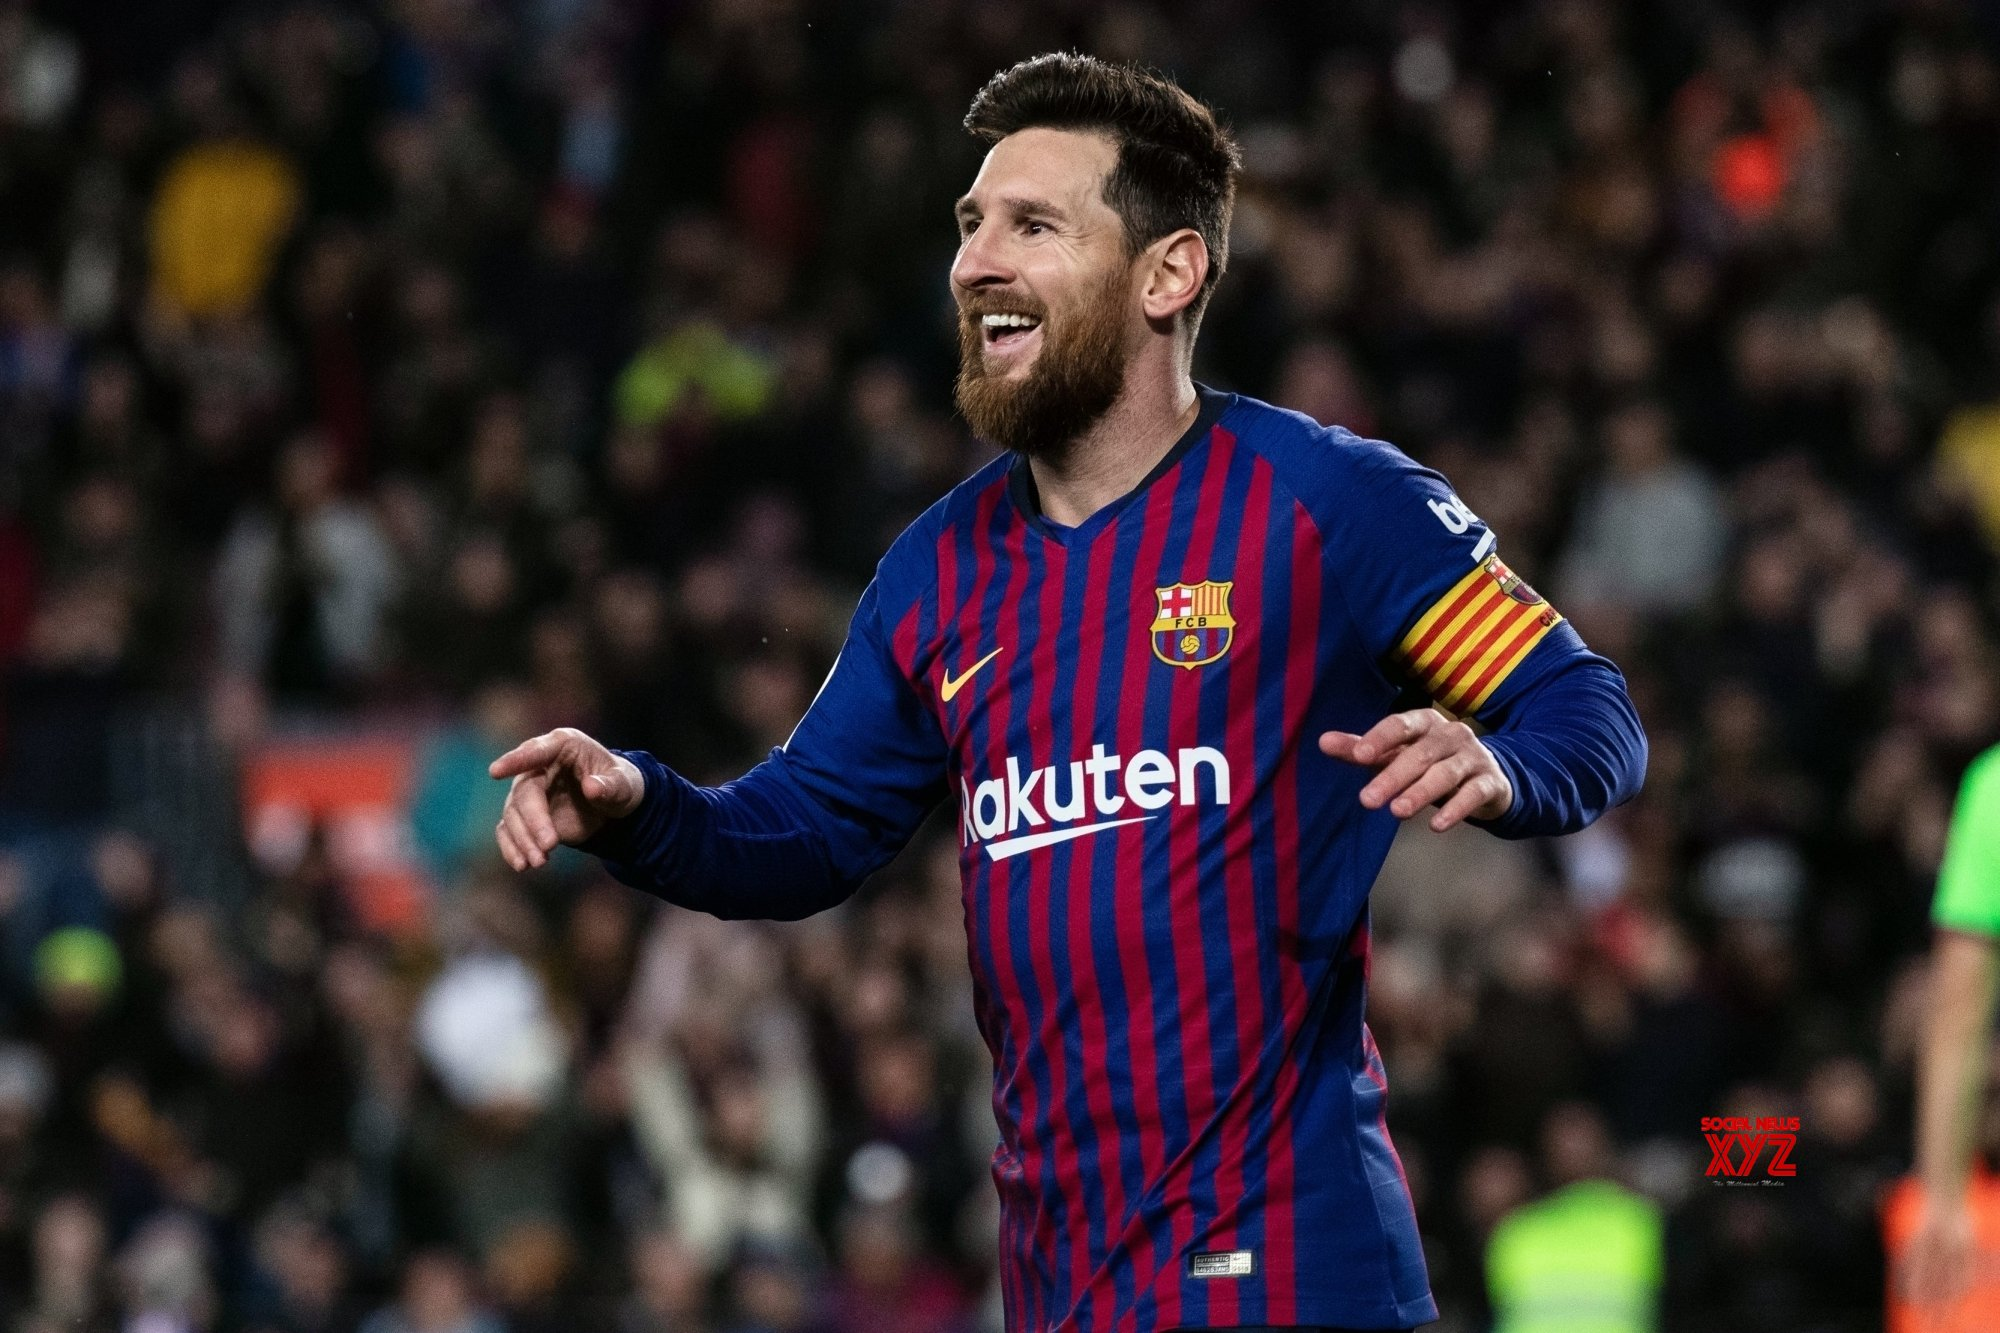 Considered leaving Barcelona in 2017, says Messi